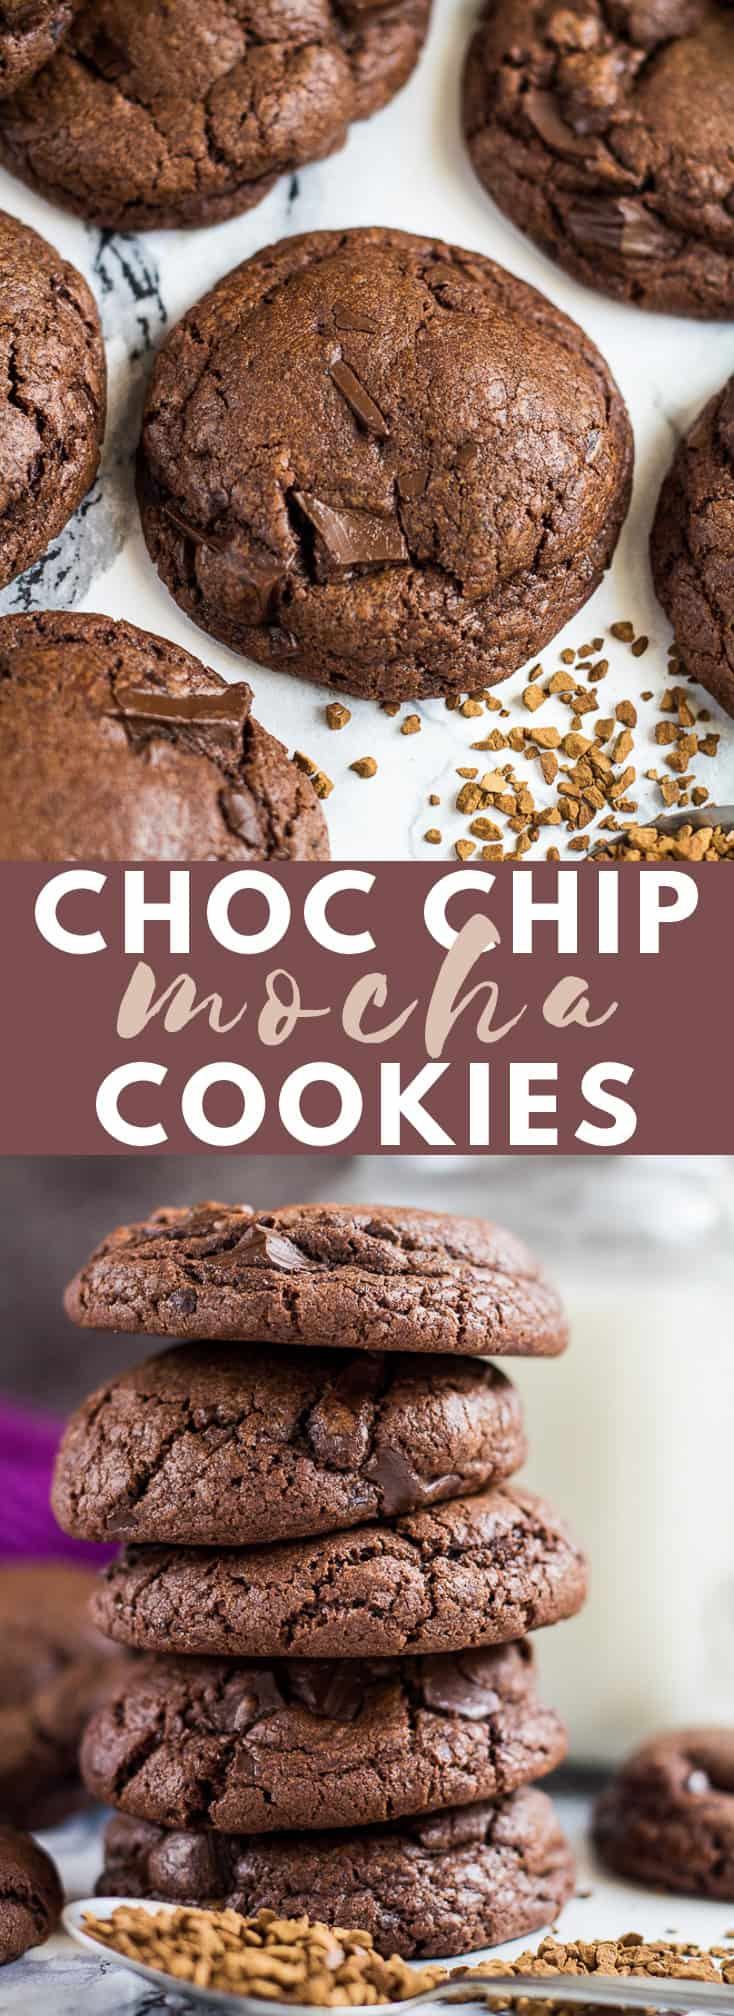 Chocolate Chip Mocha Cookies- Deliciously soft, thick, and chewy chocolate cookies infused with coffee and studded with chocolate chunks. No chilling required! #chocolatechipcookies #mocha #chocolatecookies #cookierecipes